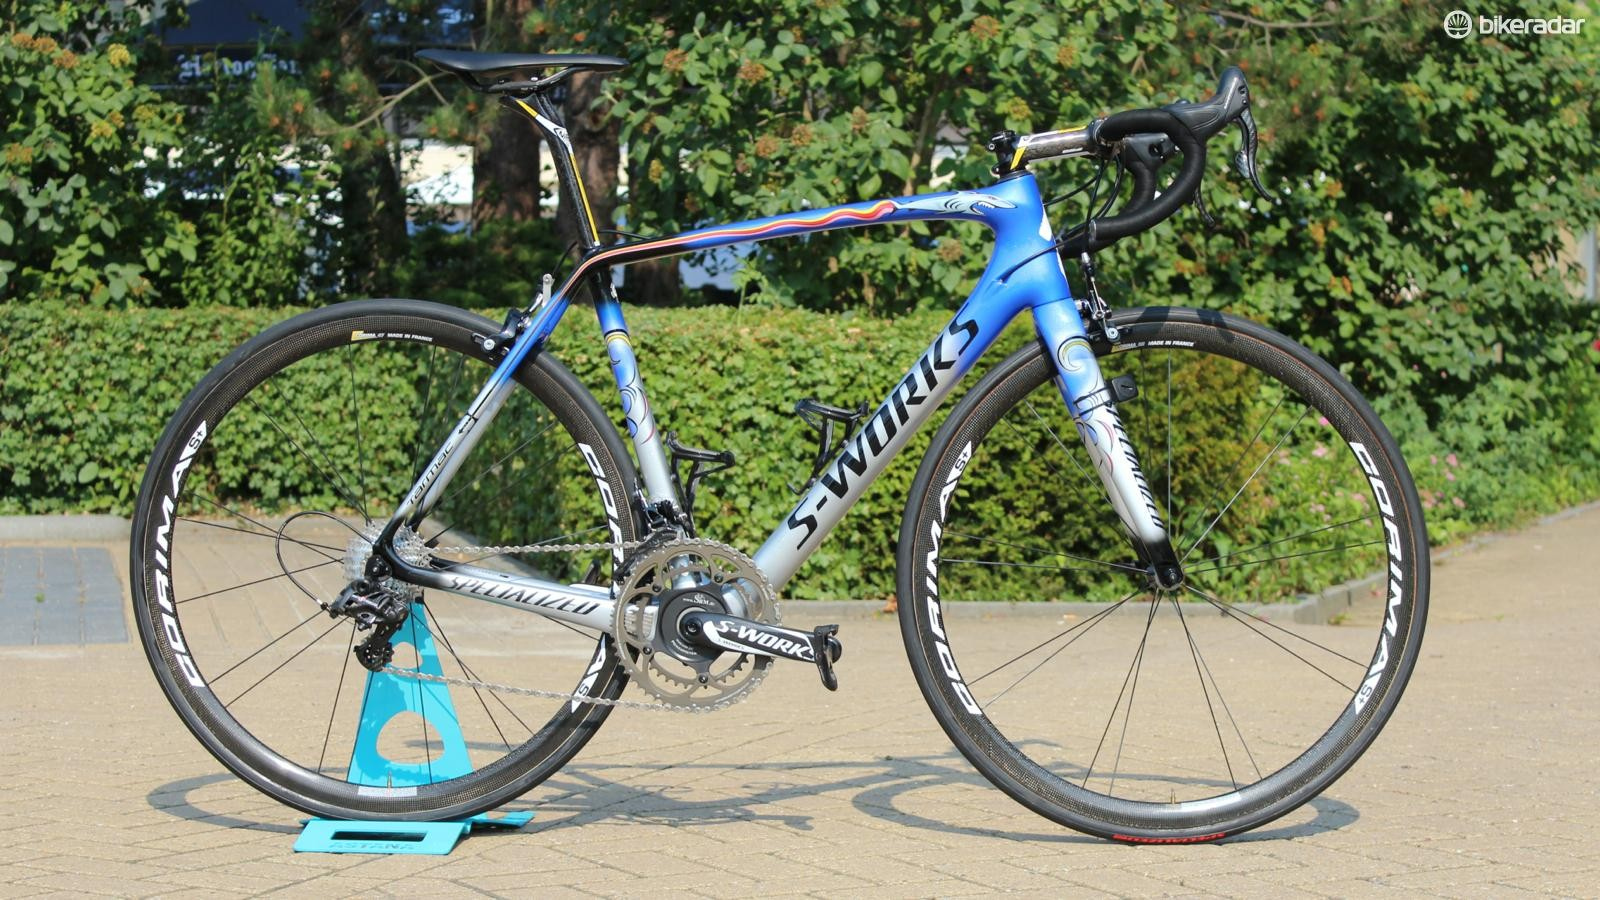 Vincenzo Nibali's Specialized S-Works Tarmac